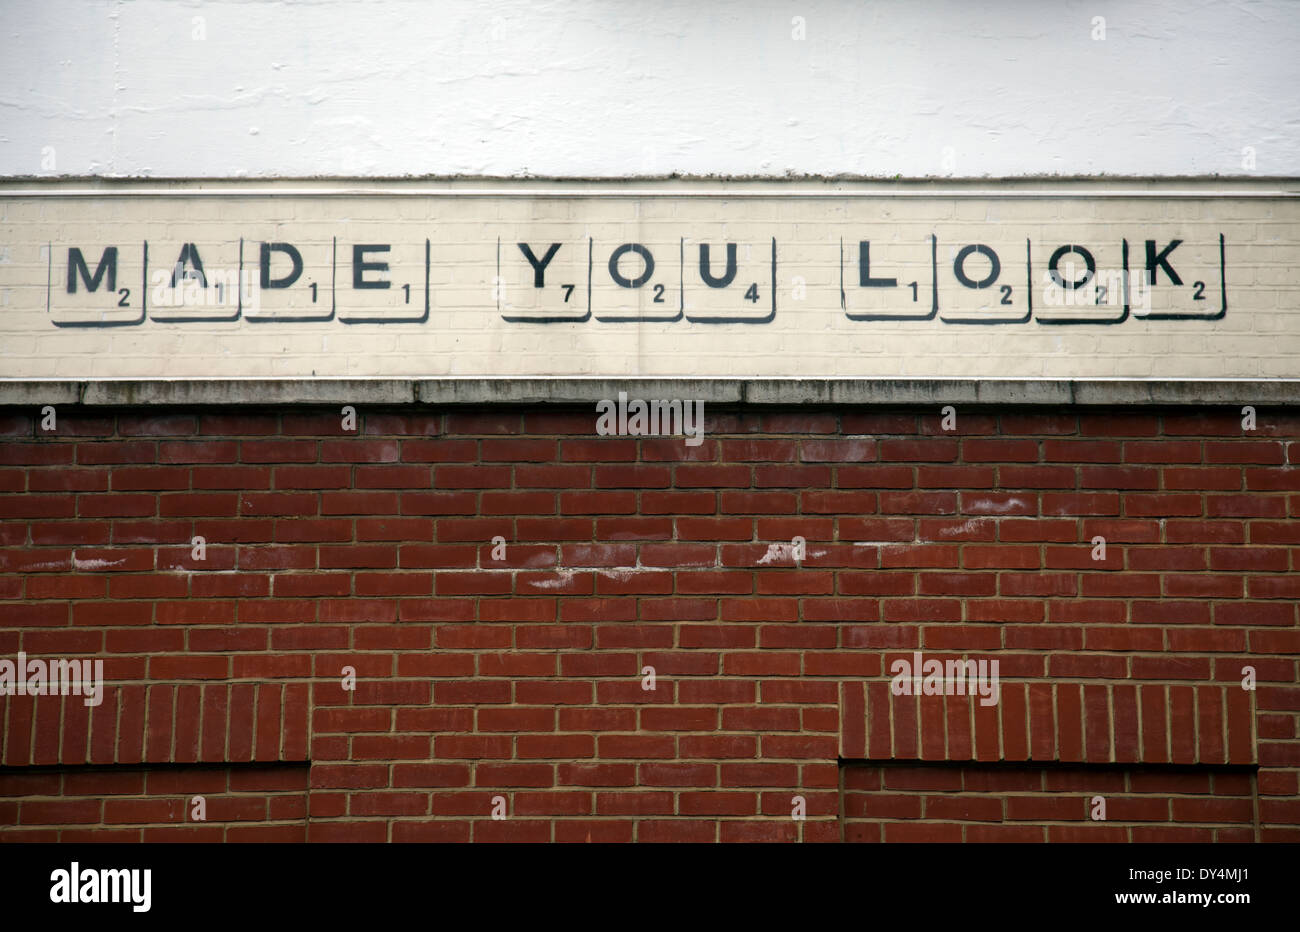 Made You Look Stencil Graffiti - London W11- UK - Stock Image